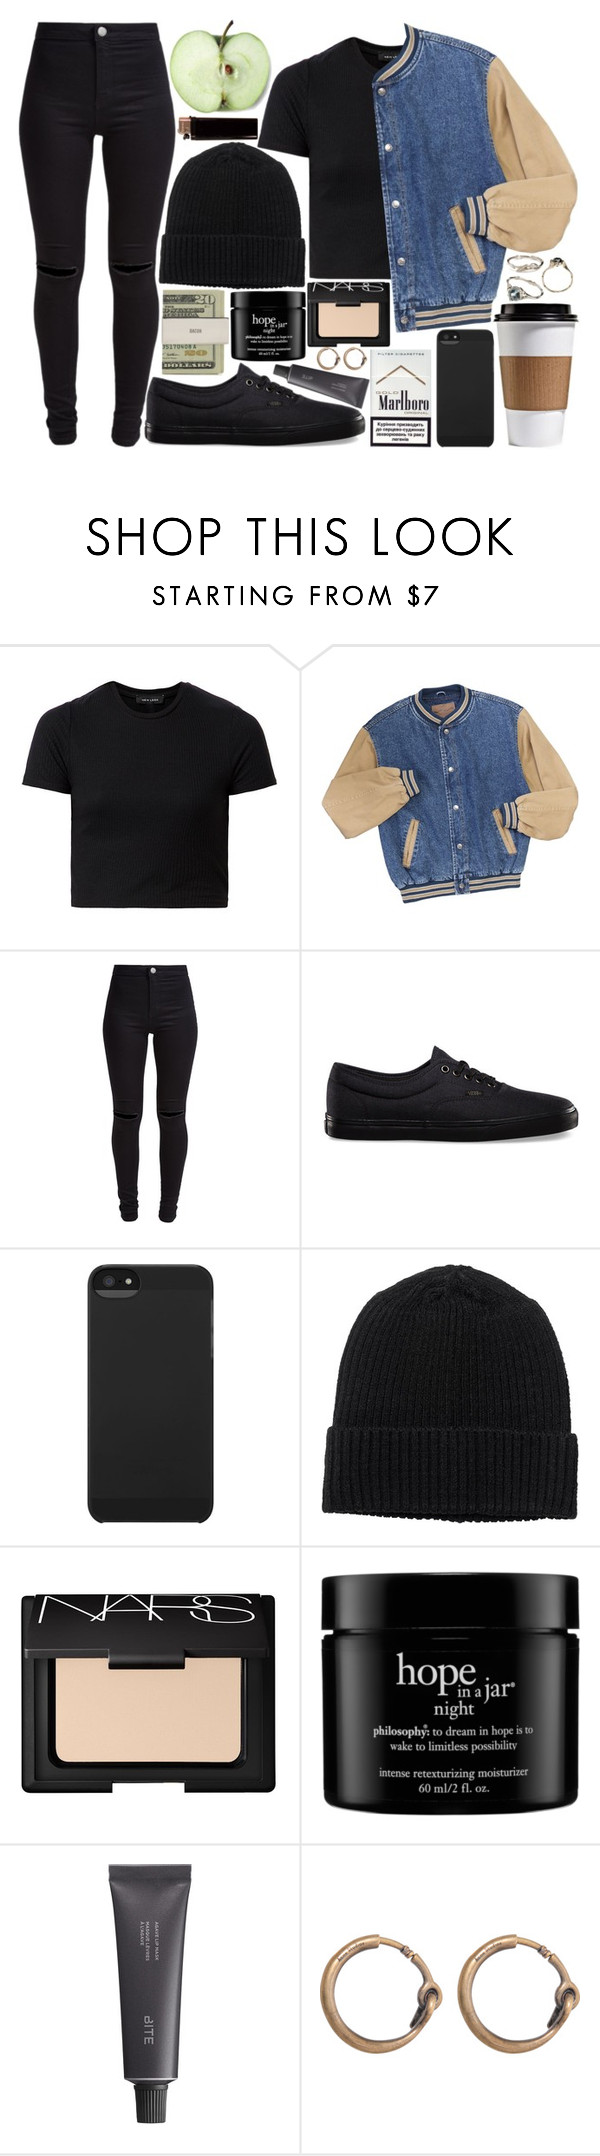 """double dragon"" by velvet-ears ❤ liked on Polyvore featuring New Look, Vans, Incase, Monki, NARS Cosmetics, Jack Spade, philosophy, Bite and Acne Studios"